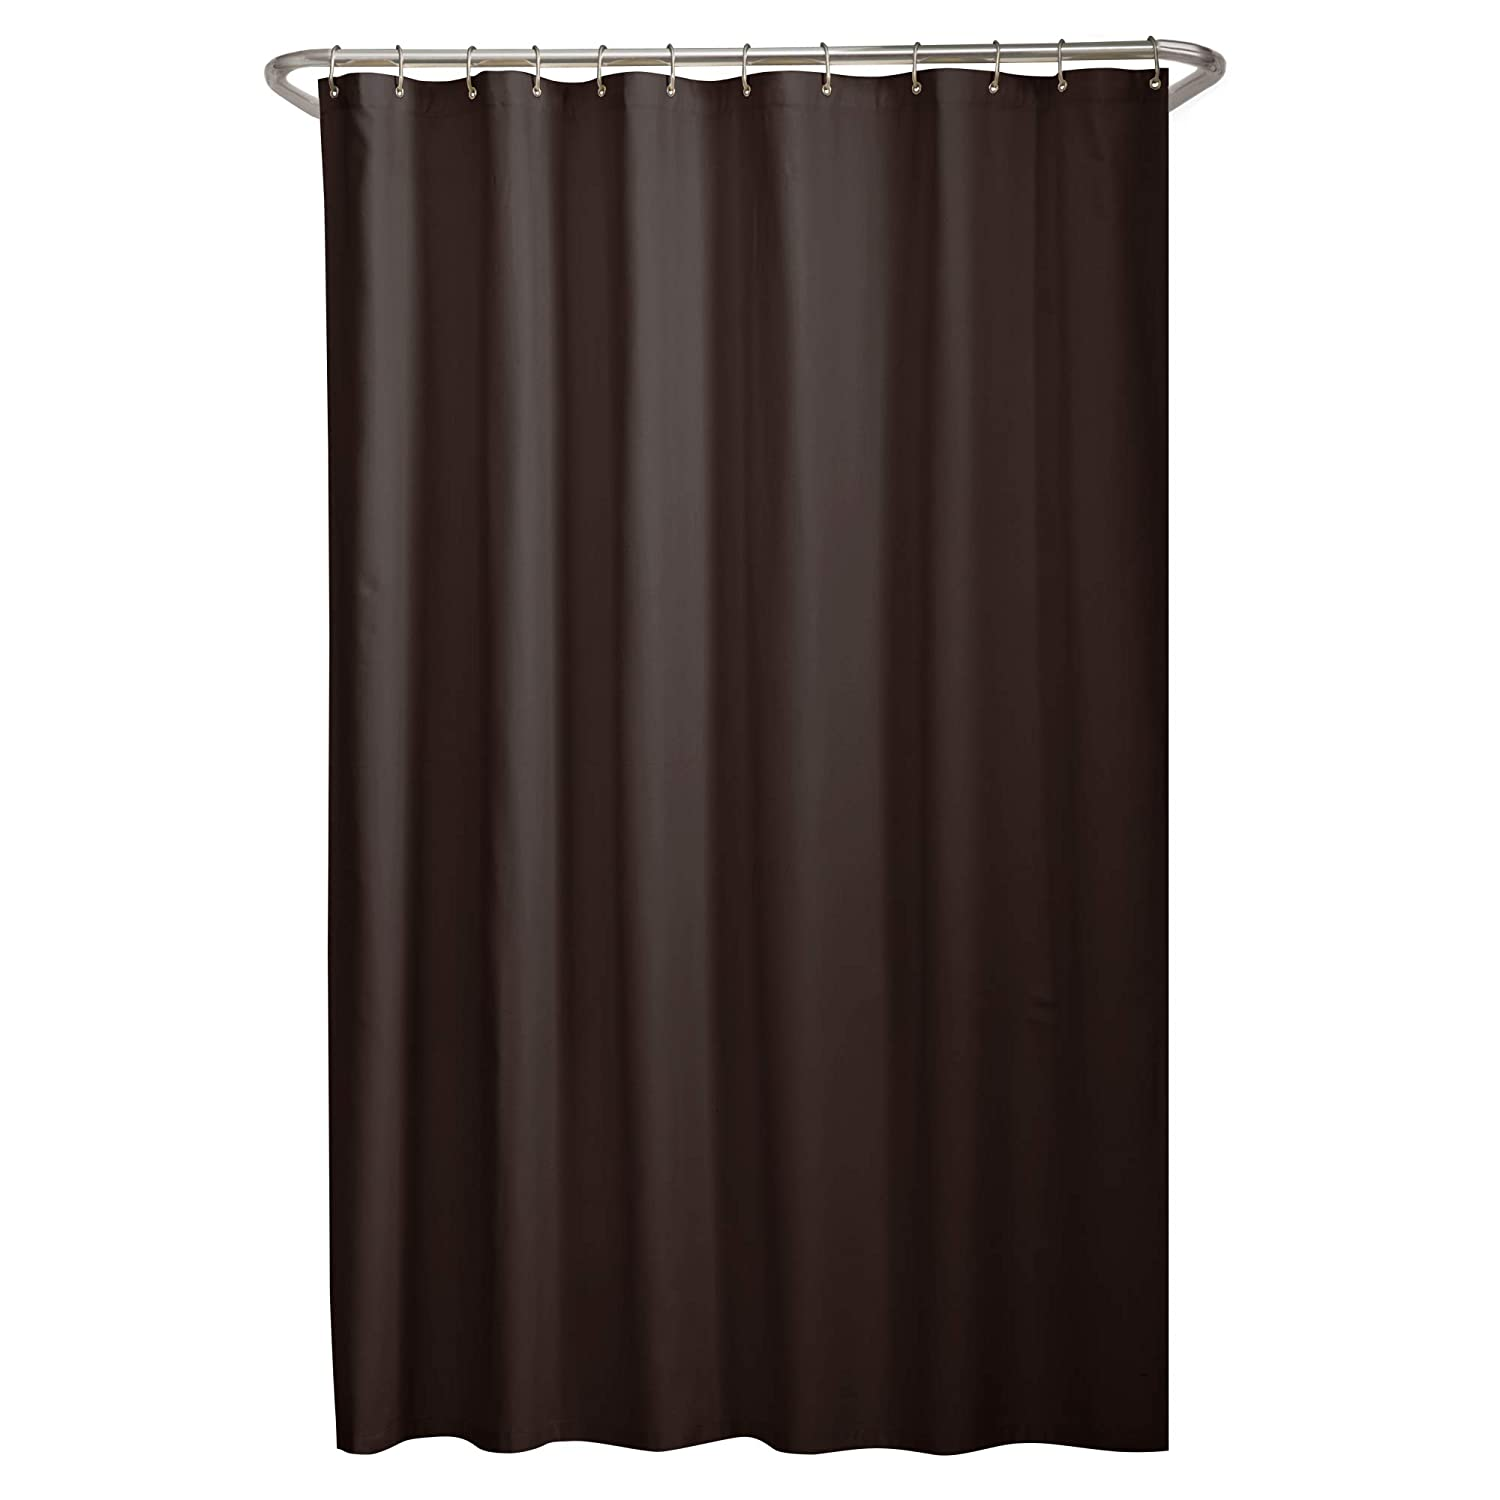 Amazon MAYTEX Soft Microfiber Water Repellent Fabric Shower Liner Or Curtain Chocolate Brown Kitchen Dining